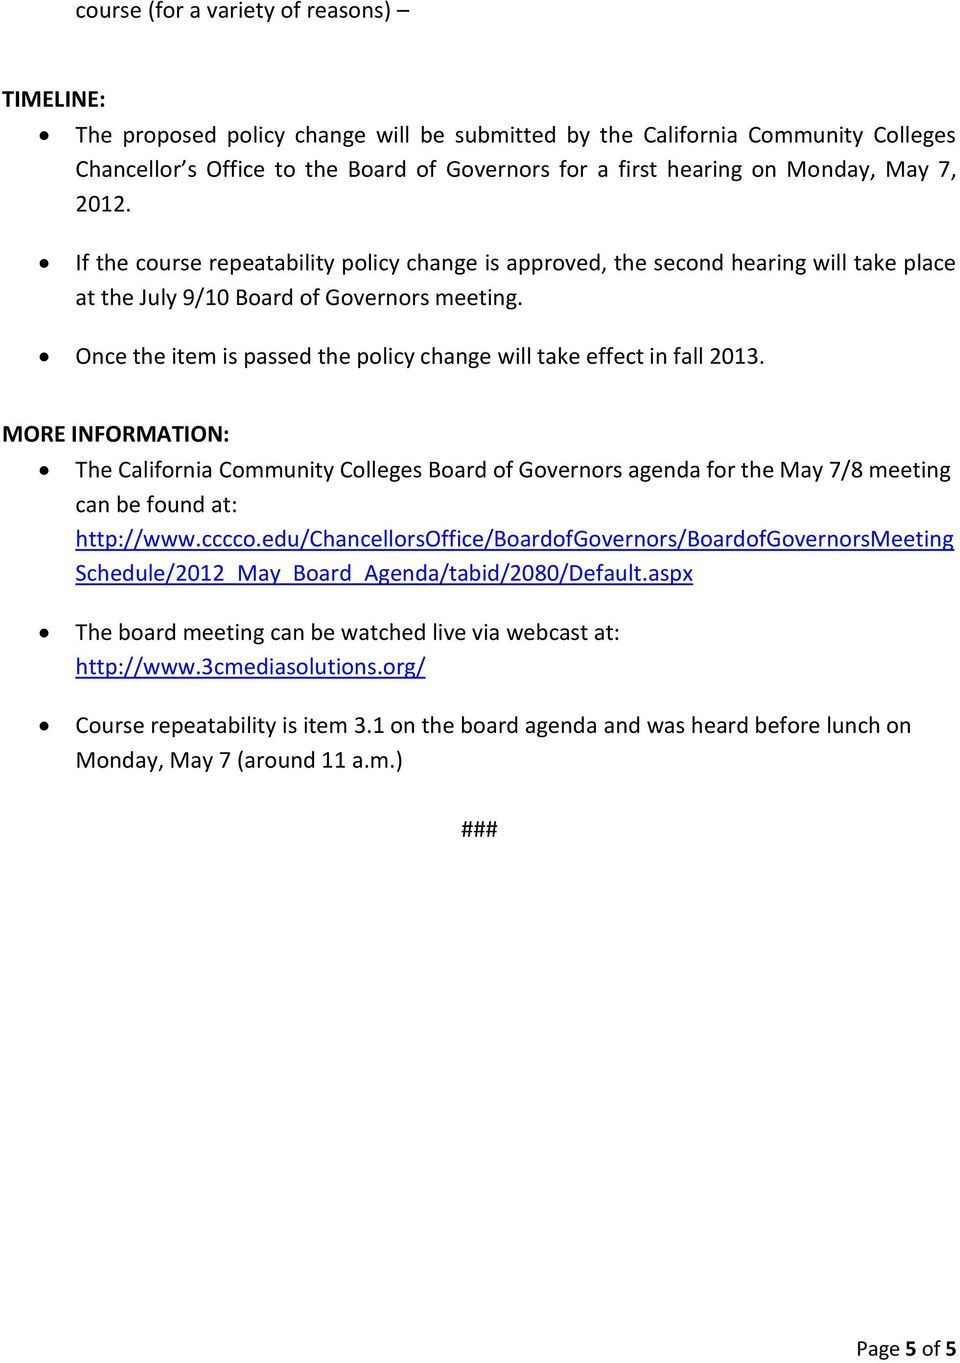 Once the item is passed the policy change will take effect in fall 2013.